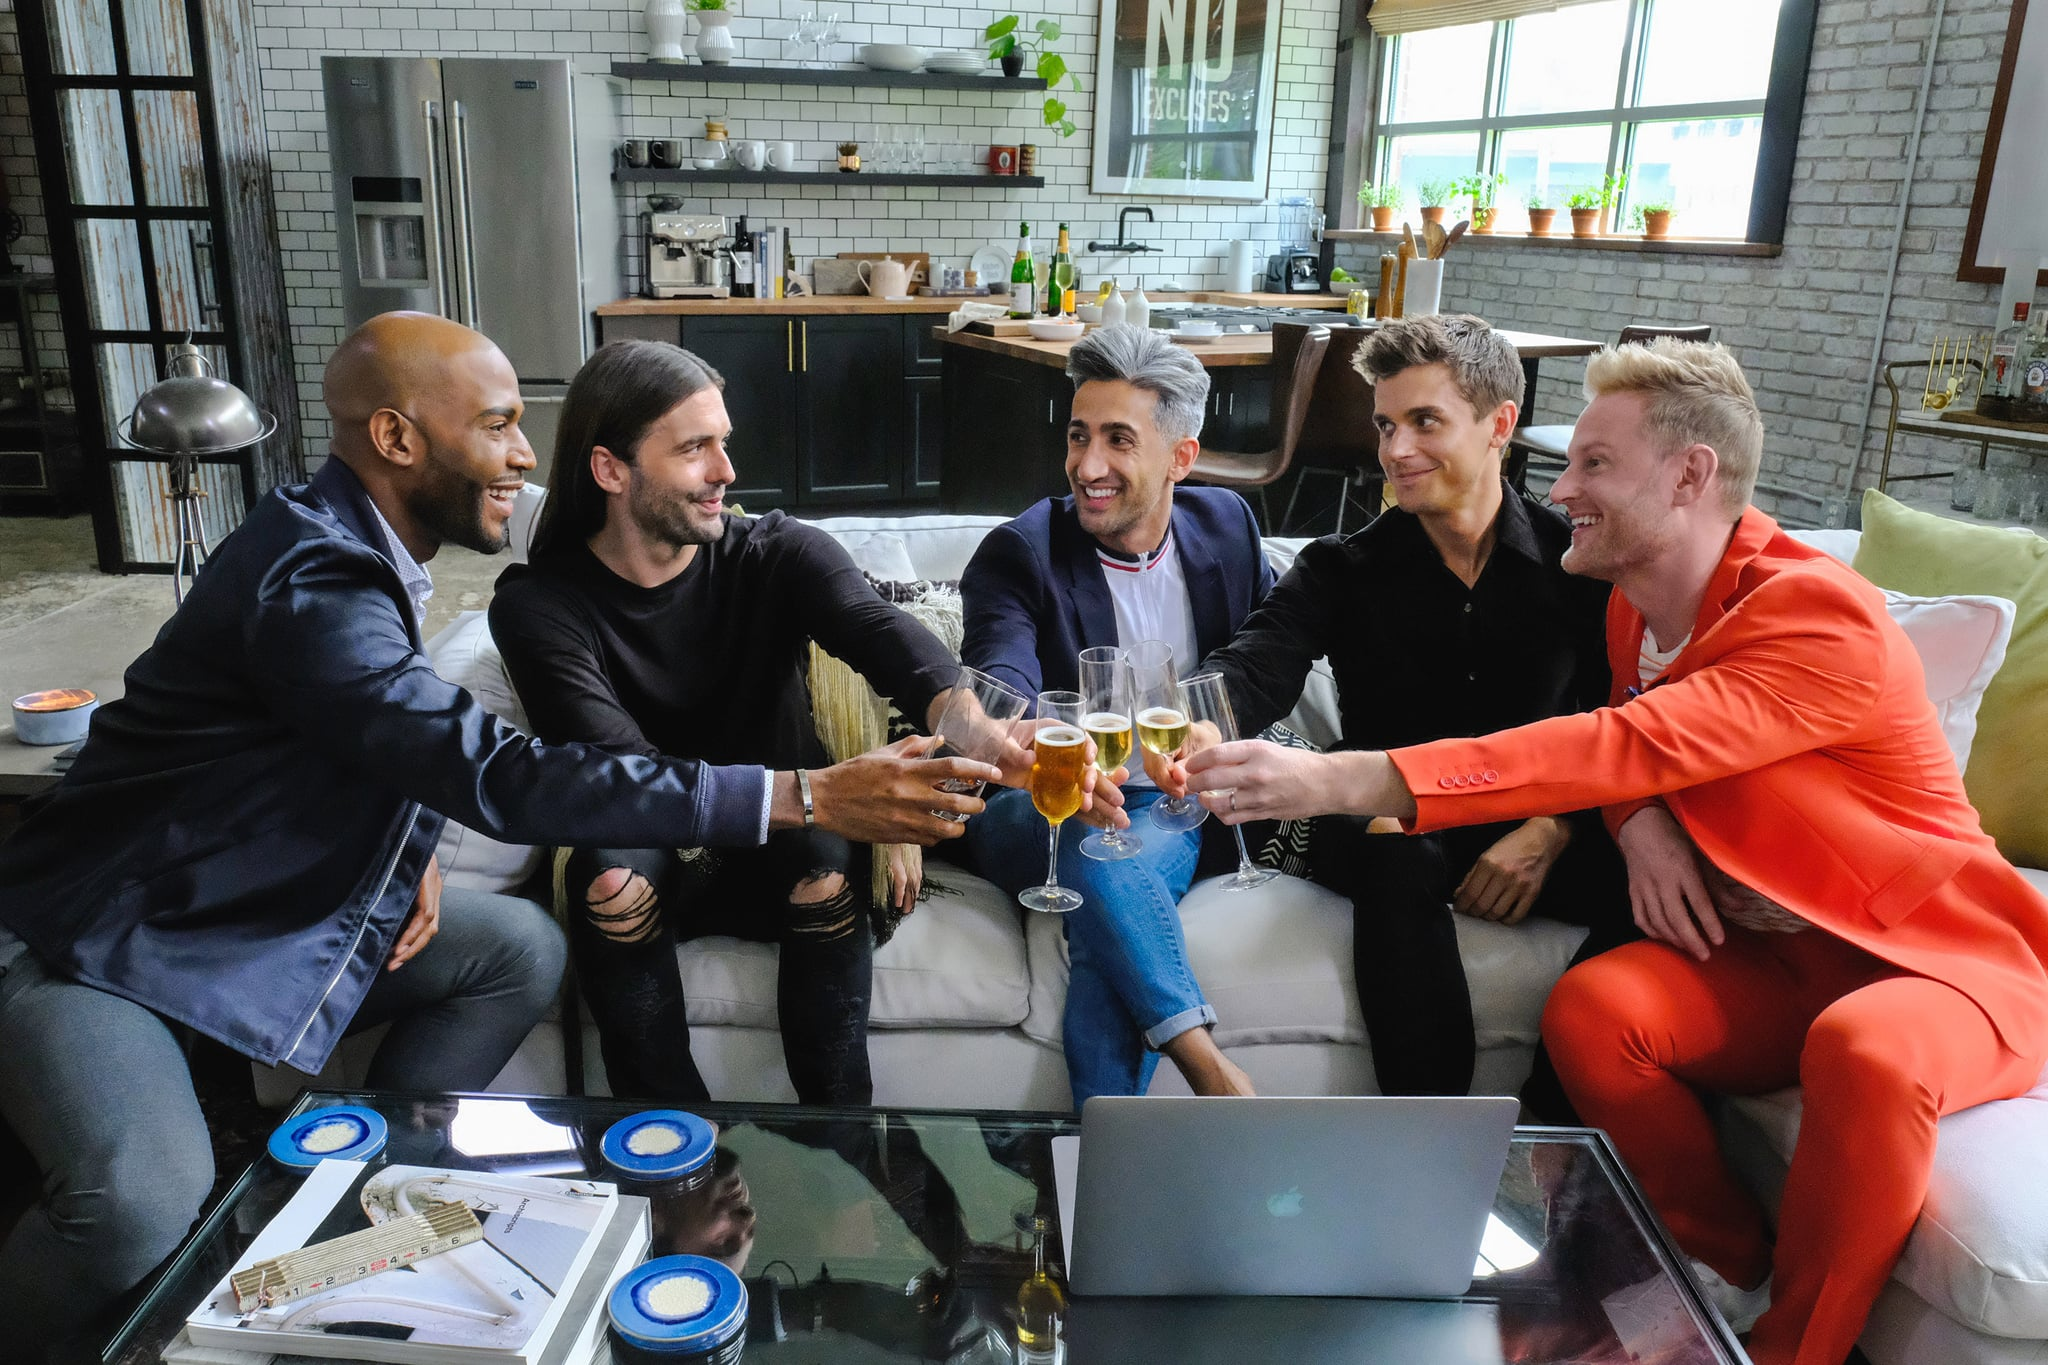 QUEER EYE, (aka QUEER EYE FOR THE STRAIGHT GUY), from left: Karamo Brown, Jonathan Van Ness, Tan France, Antoni Porowski, Bobby Berk, (Season 1, airs Feb. 7, 2018). photo: Carin Baer / Netflix / Courtesy: Everett Collection